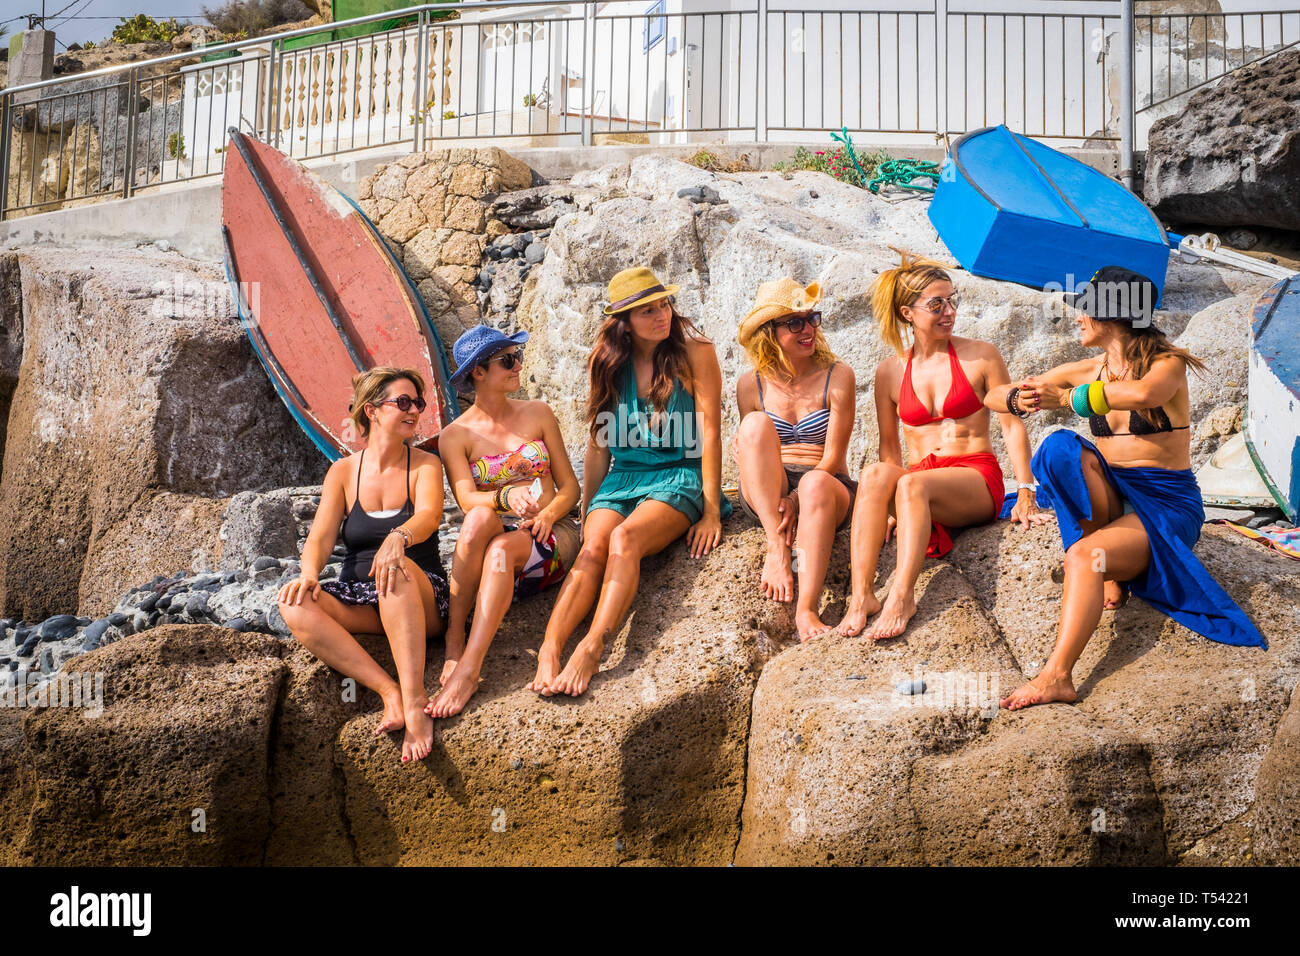 group of nice and beautiful friends smiling together having fun in friendship summer leisure time outdoor near the beach. squimsuits and ladies enjoye Stock Photo